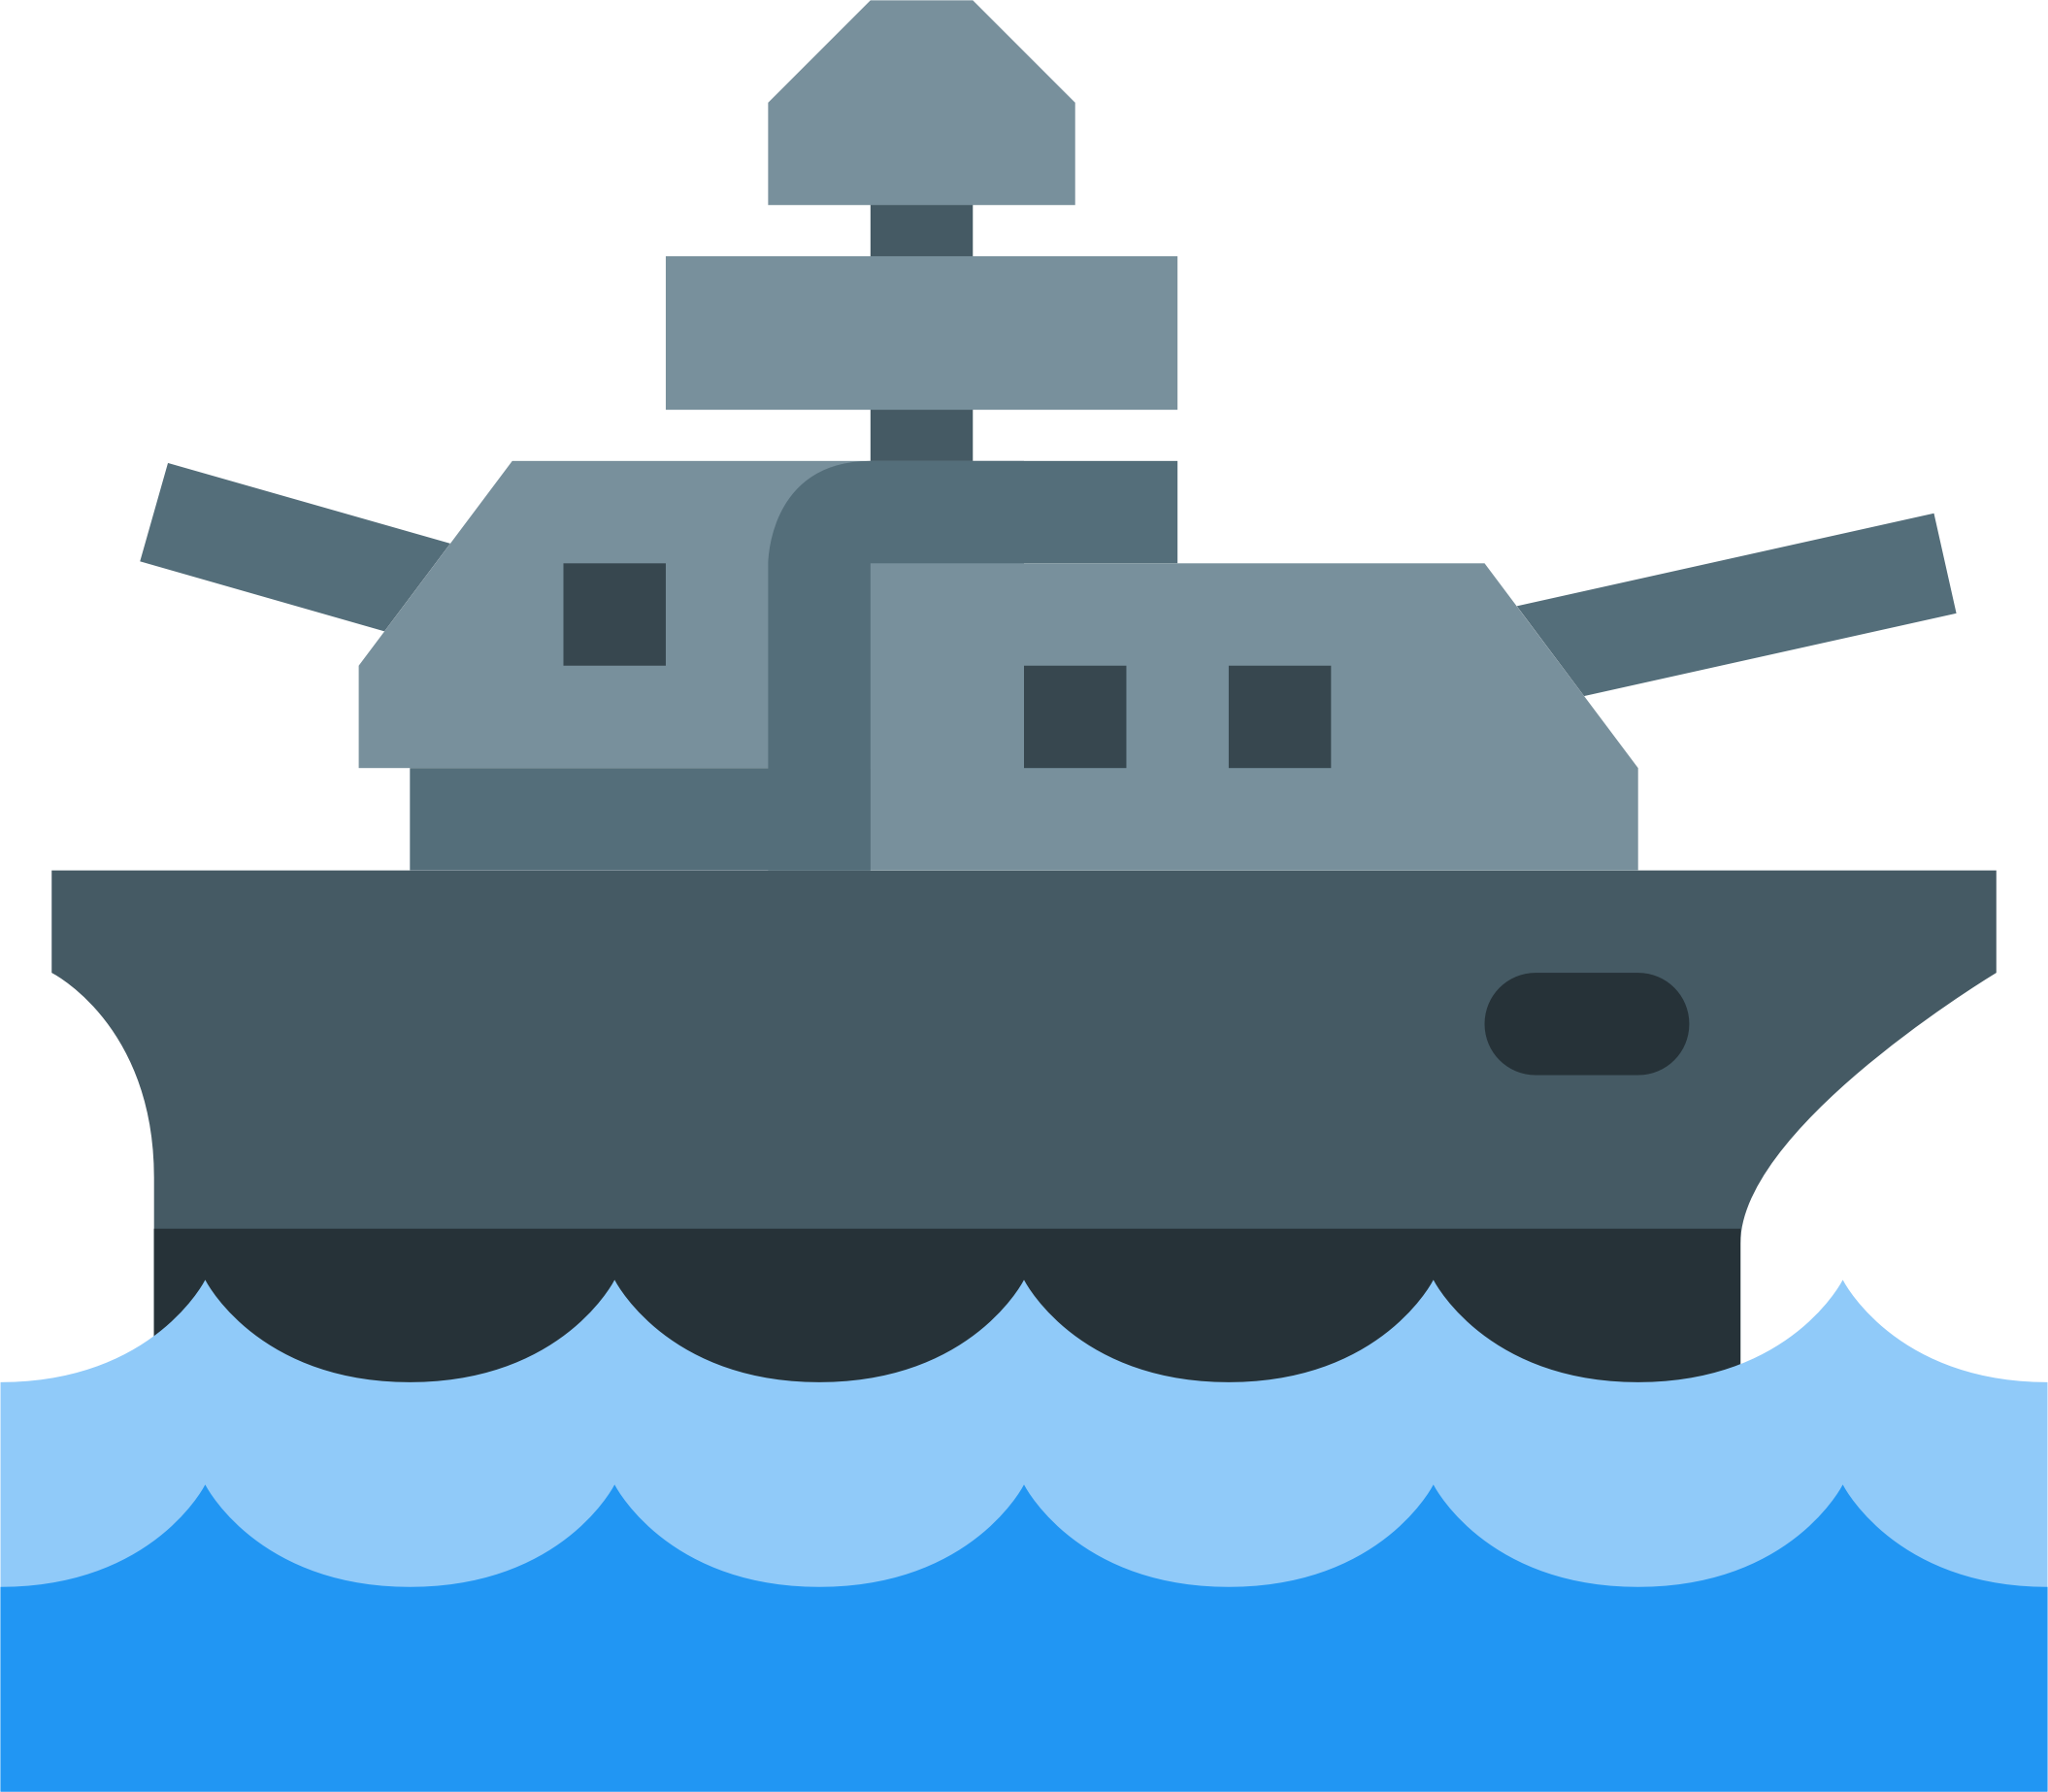 png royalty free download Battleship clipart. Big image png